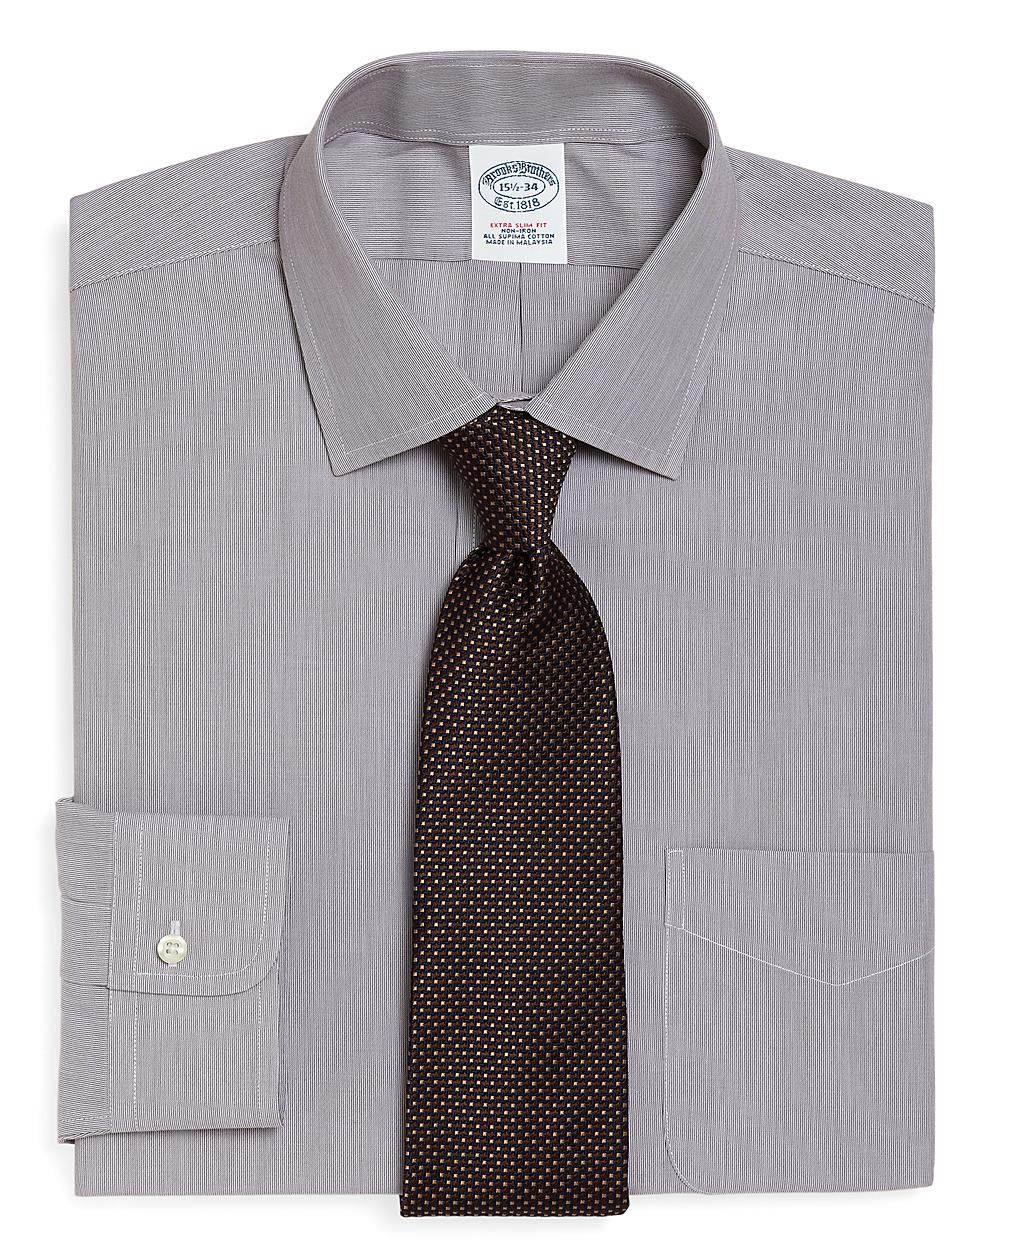 Brooks brothers supima cotton non iron extra slim fit for Brooks brothers dress shirt fit guide